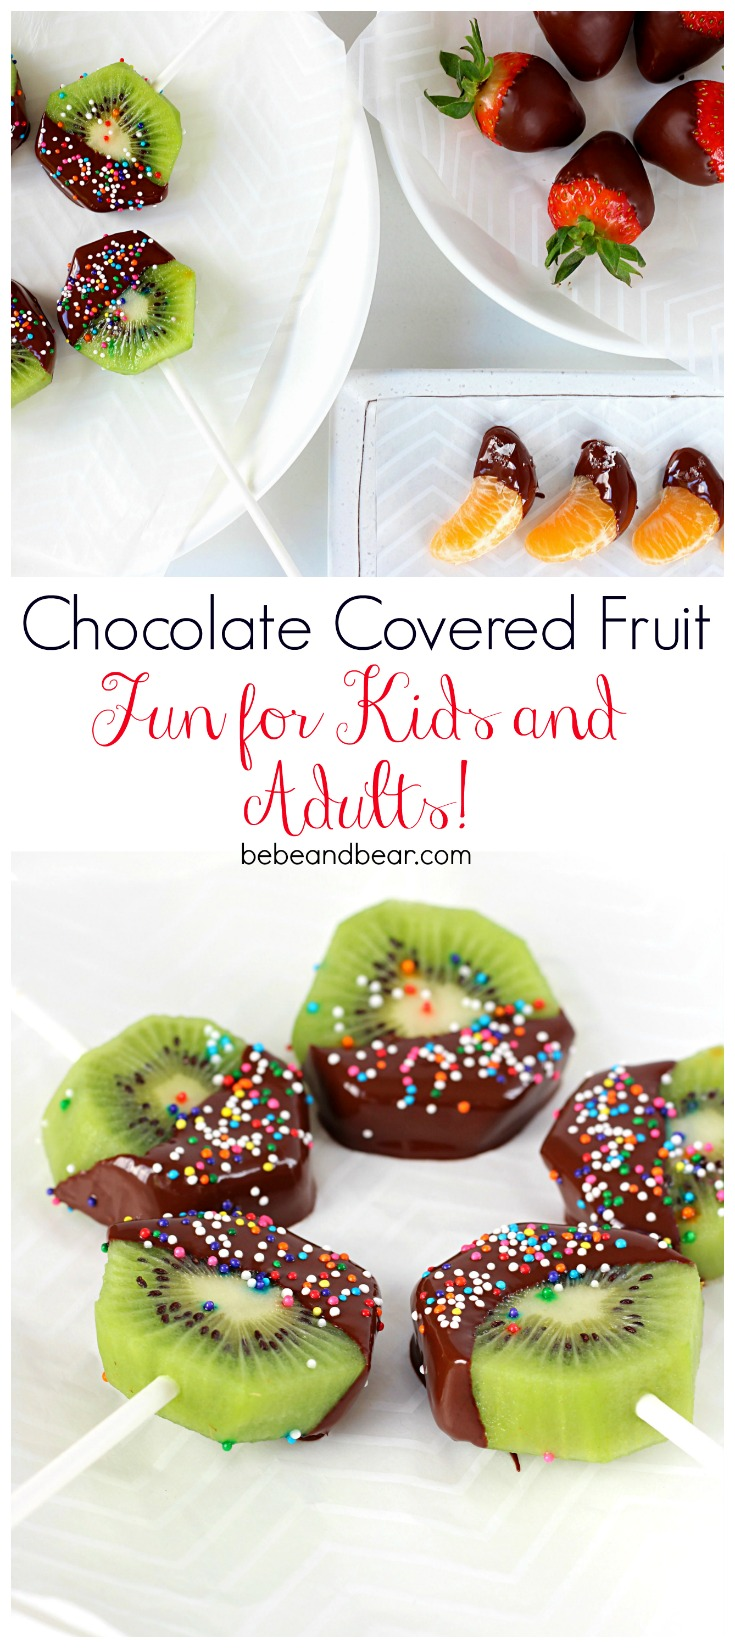 Chocolate covered Fruit: Easy Dessert Ideas for kids and adults.